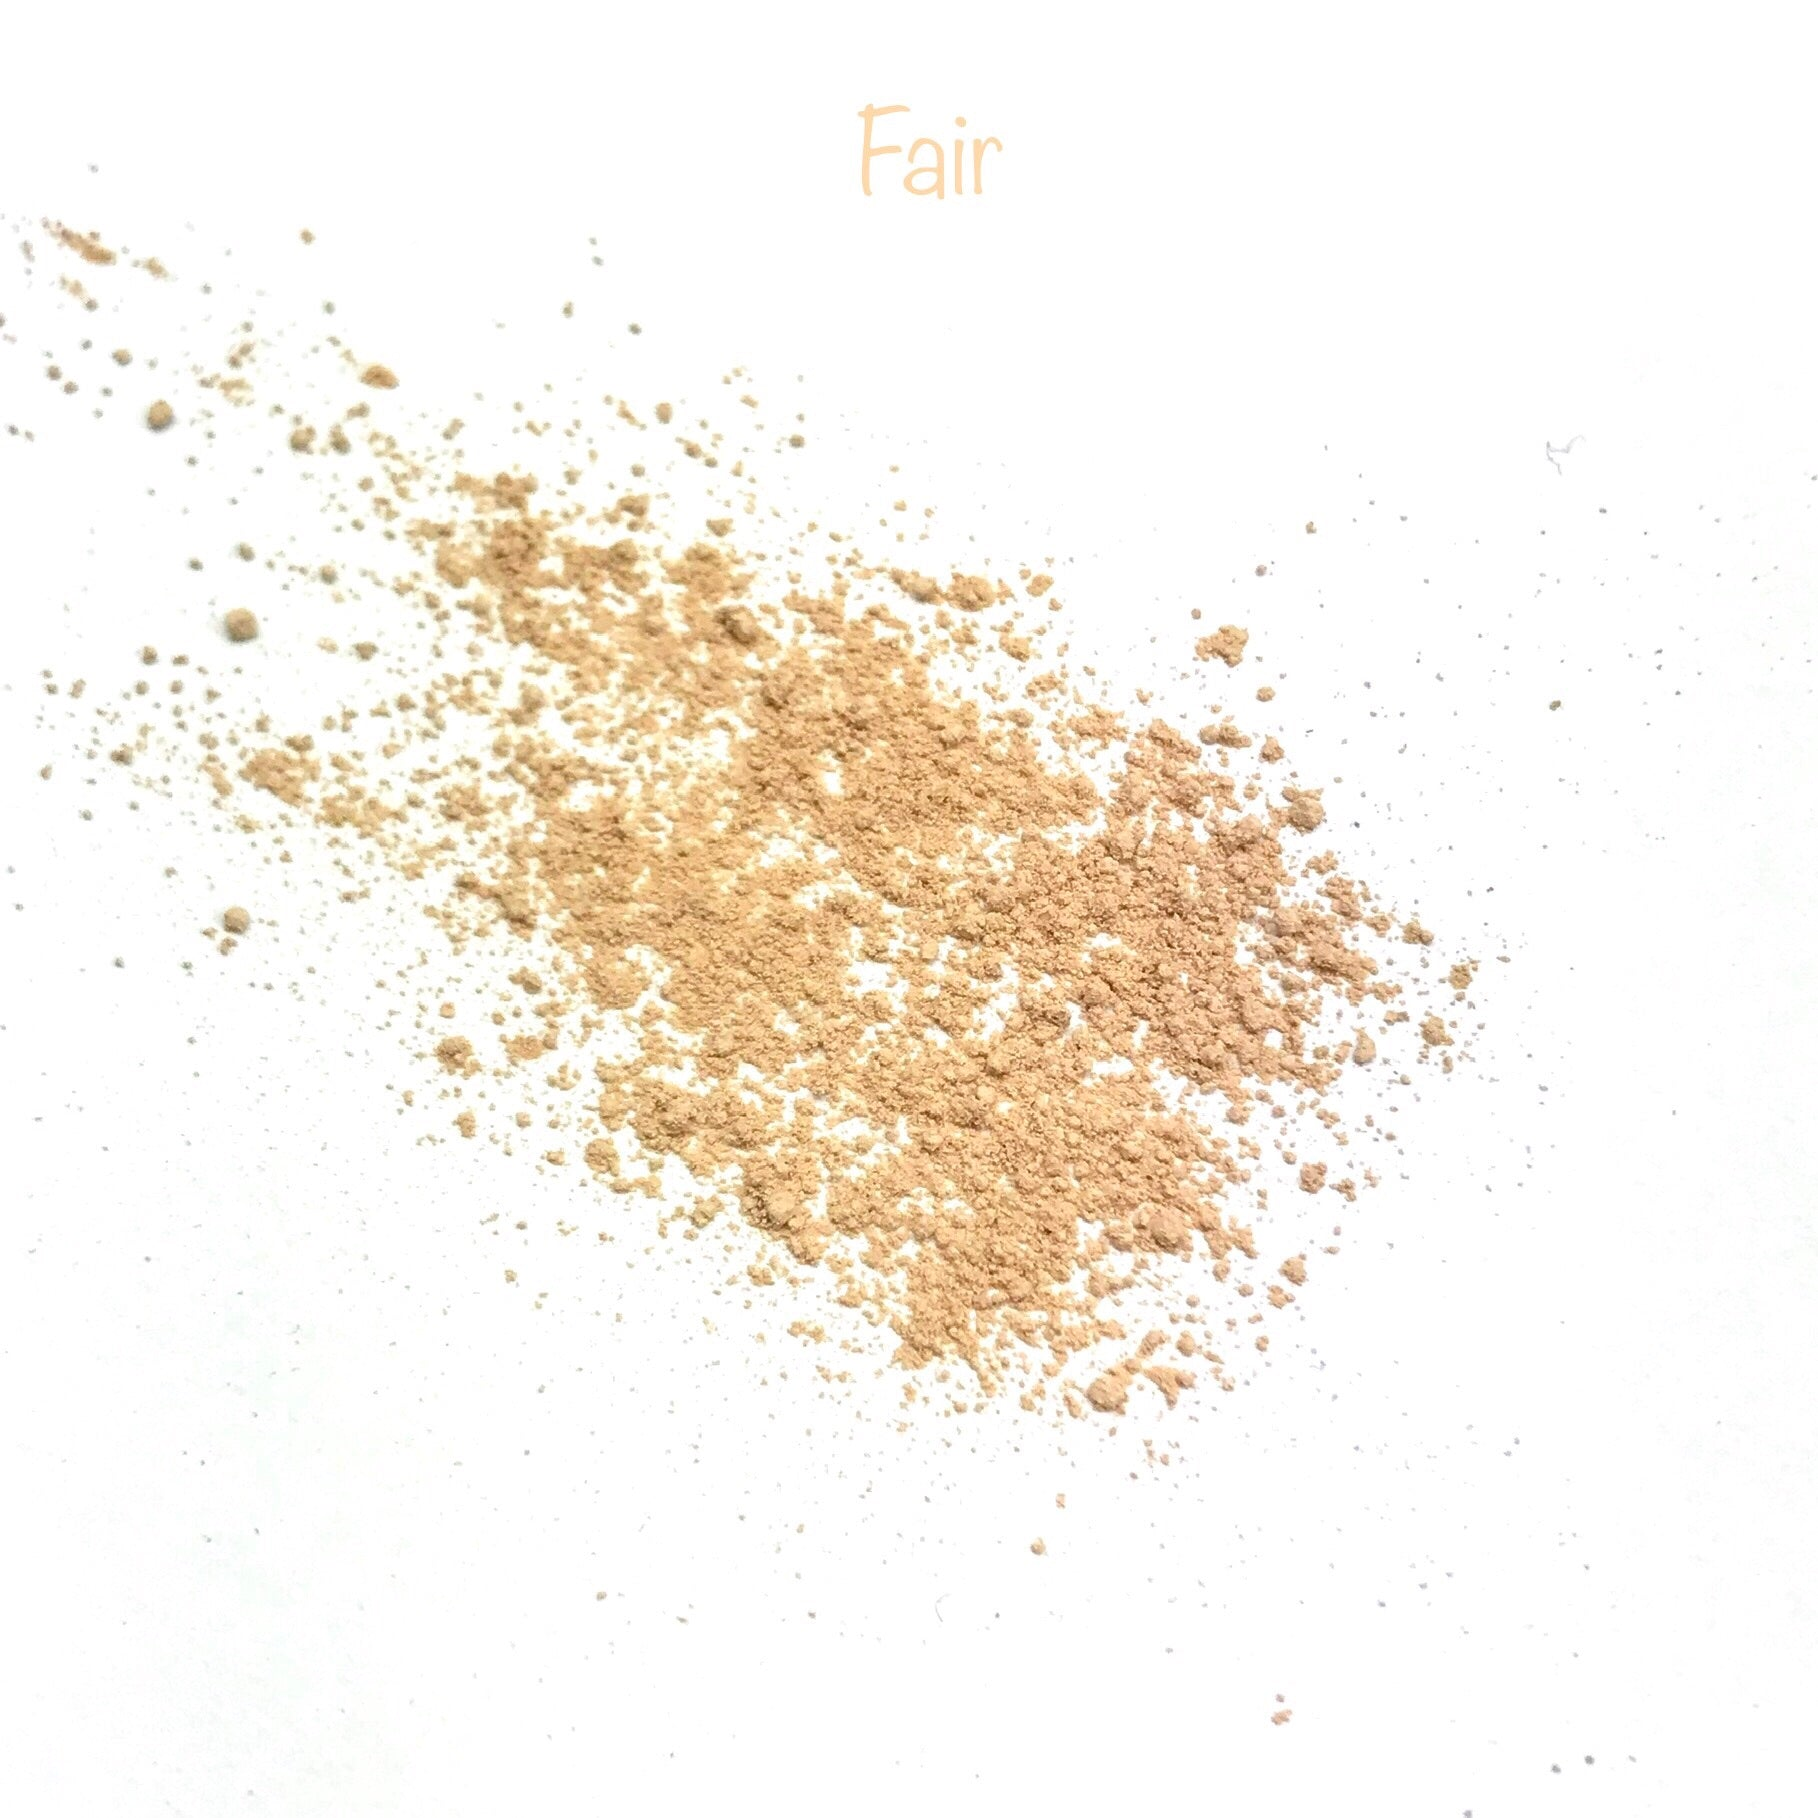 Pure Mineral Foundation Fair - Mineraalimeikkipuuteri